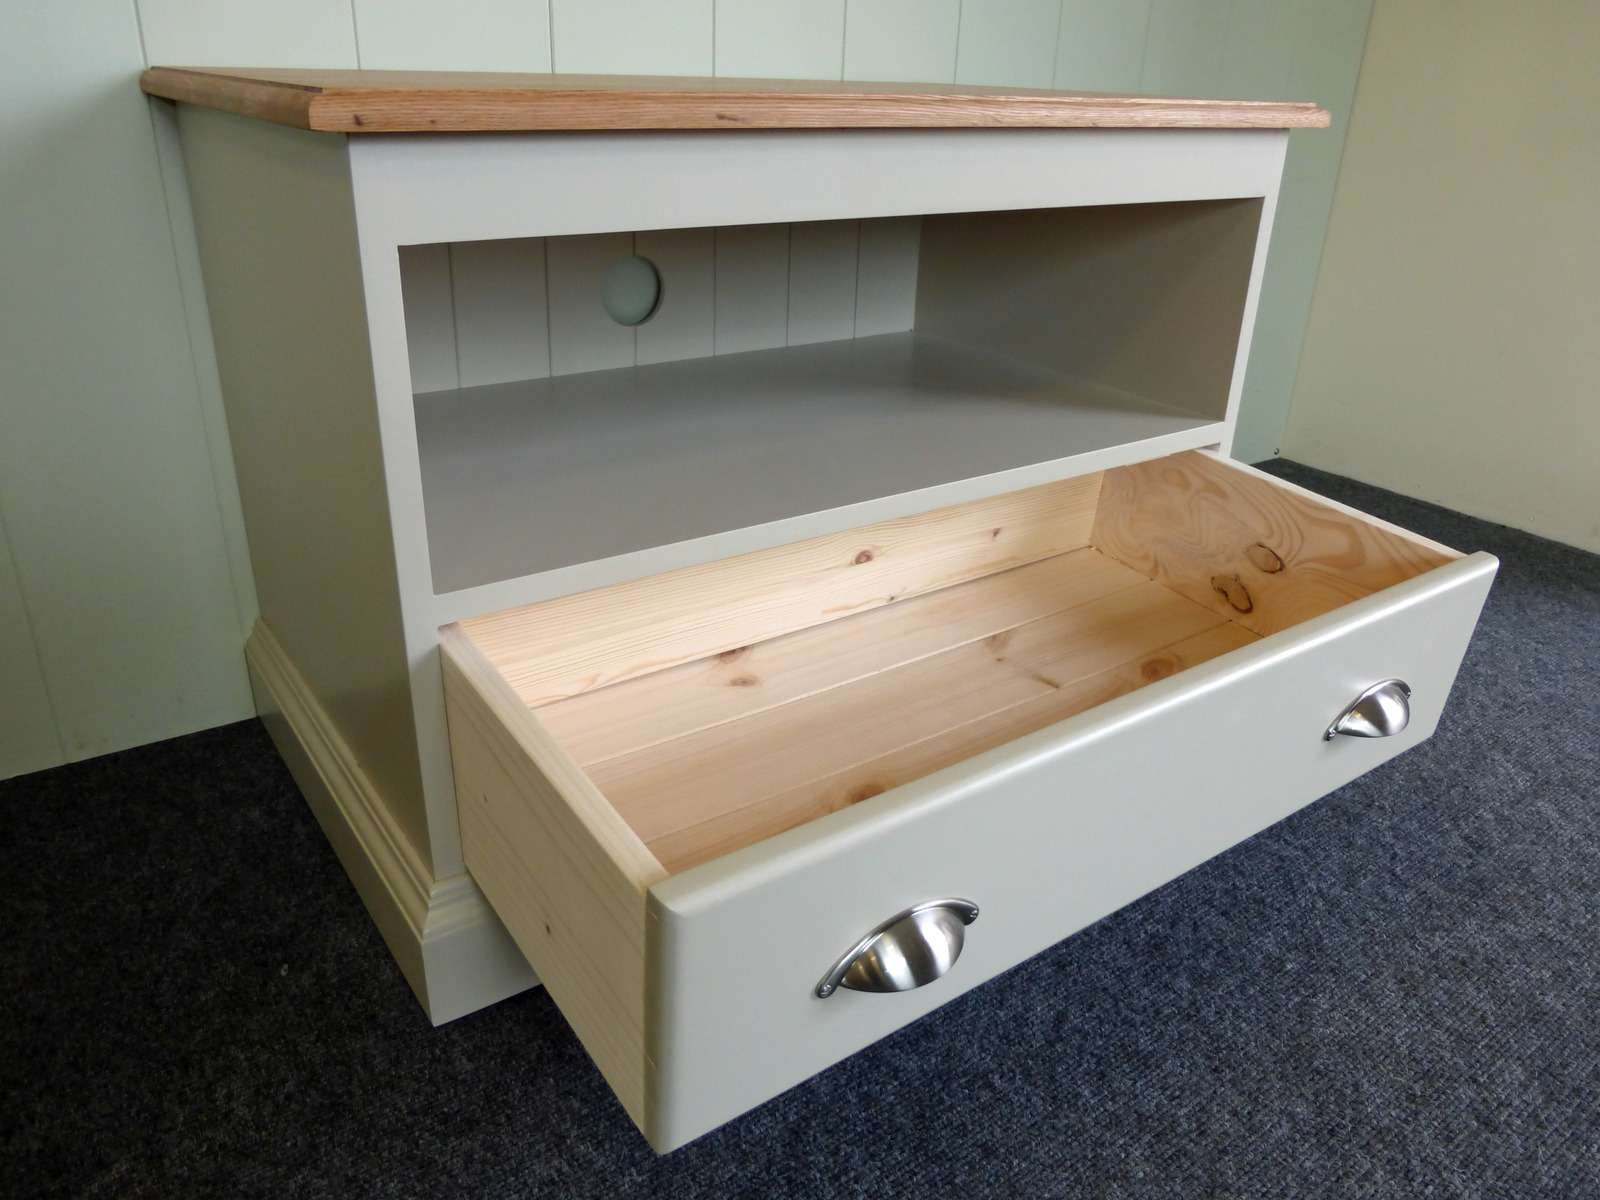 Painted Tv Stand Huge Choice Of Options – Pine, Oak, Painted And In Painted Tv Stands (View 13 of 15)